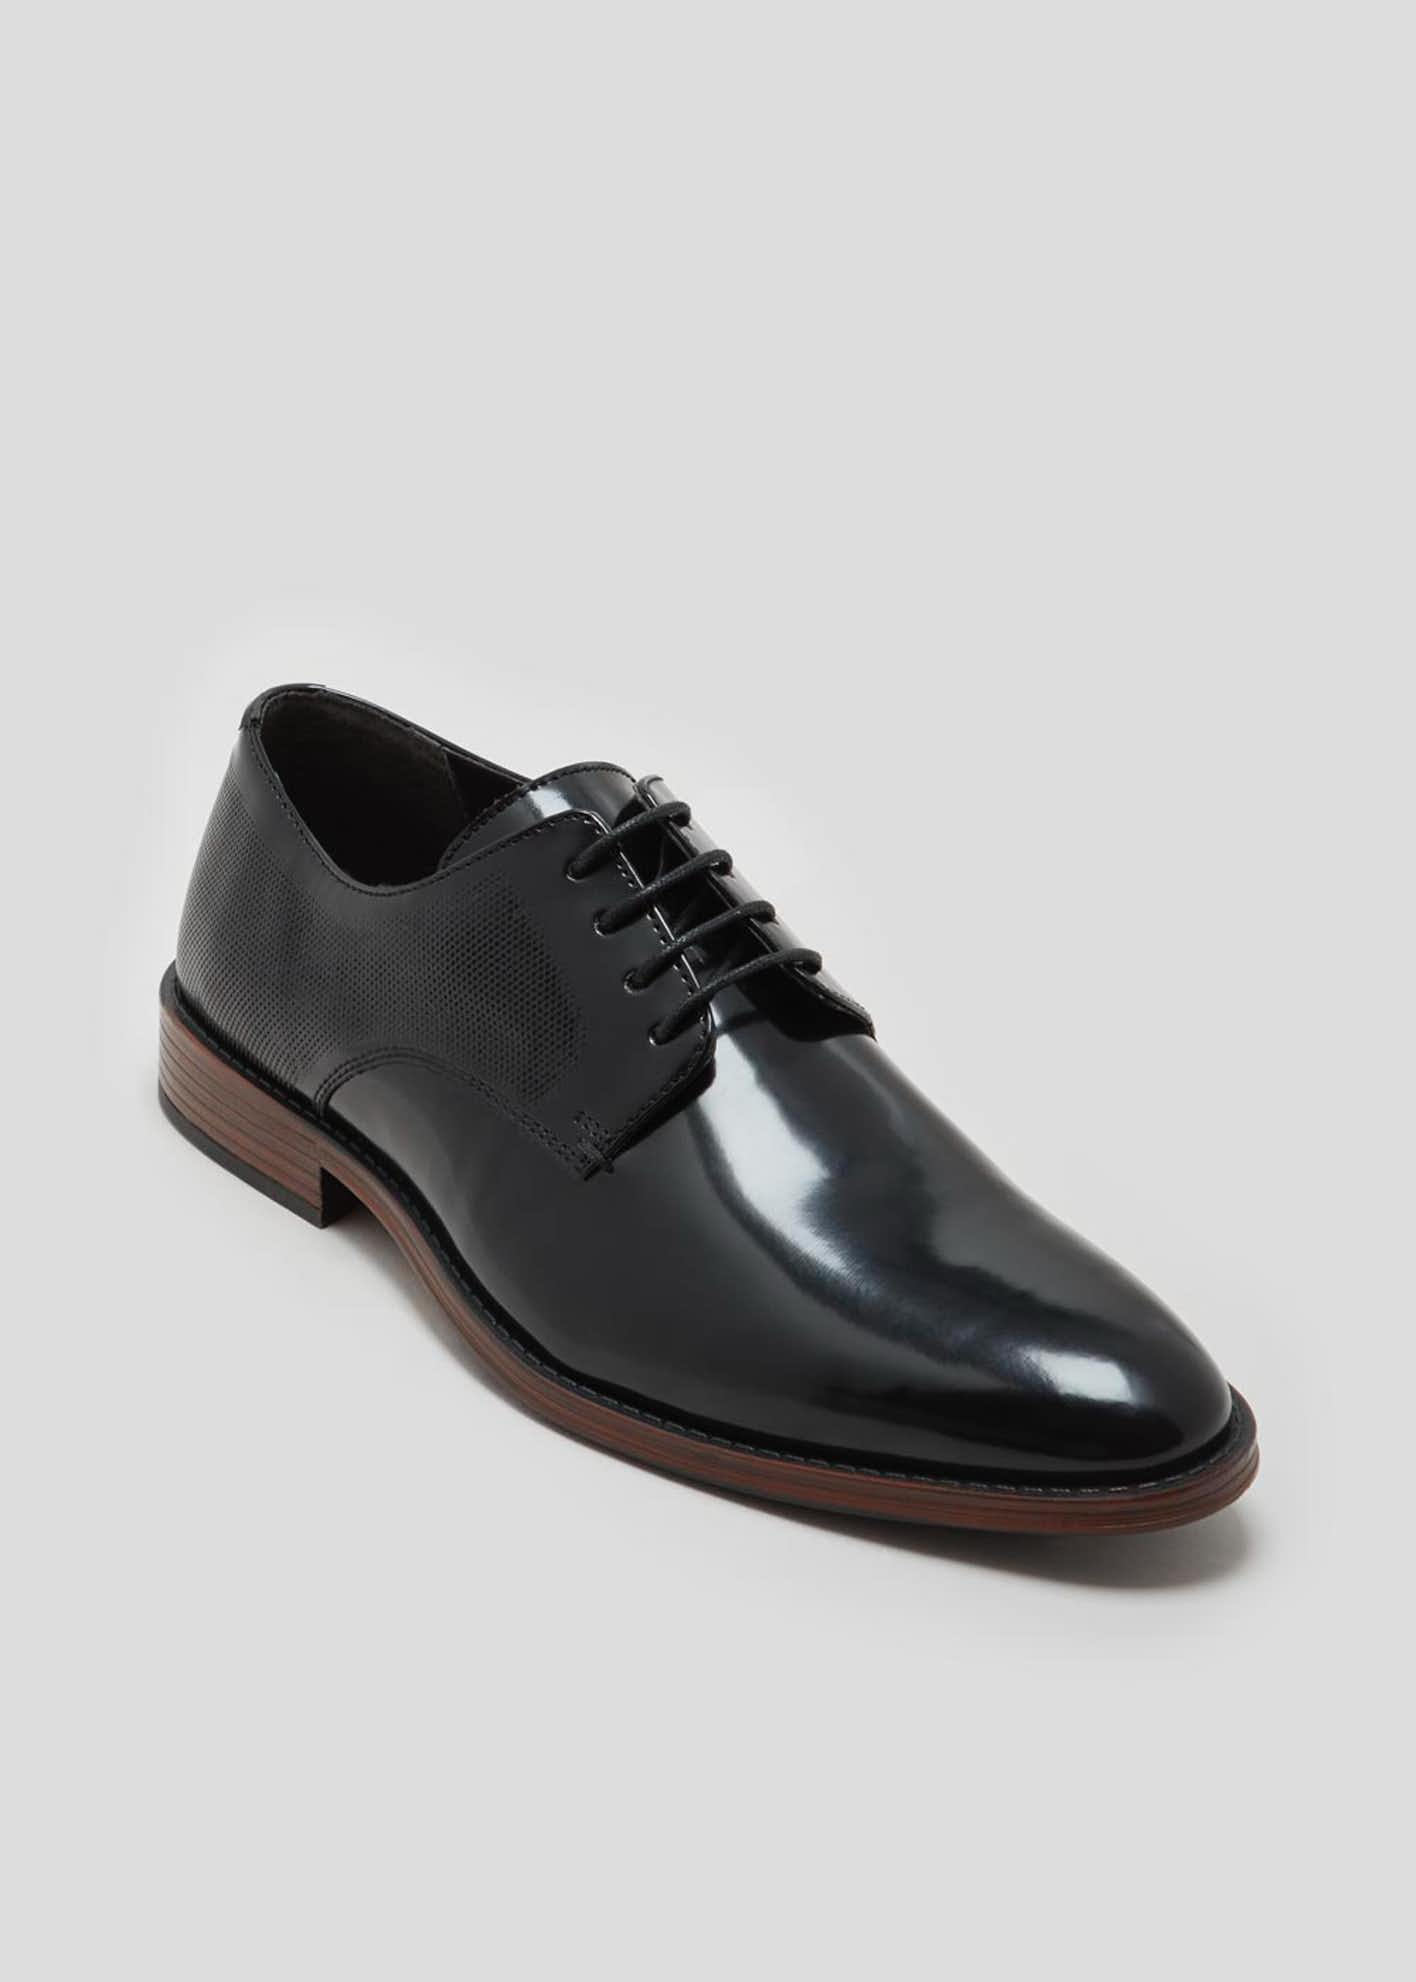 Occasion Gibson Brogues